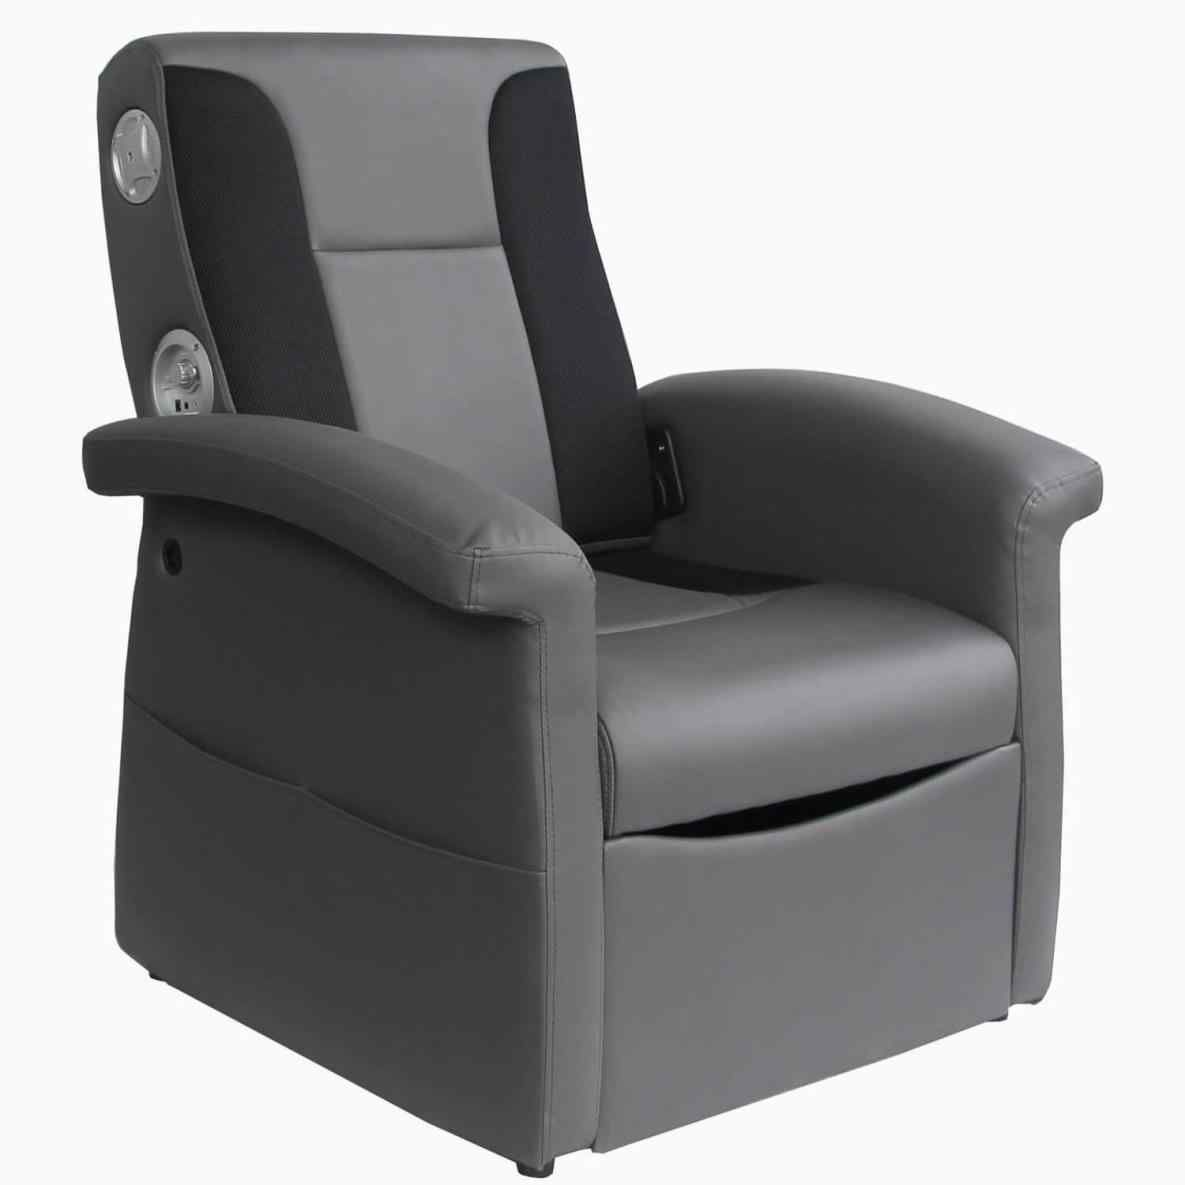 Merveilleux Brilliant Comfortable Chairs For Watching Tv That You Will More Enjoy  Https://breakpr